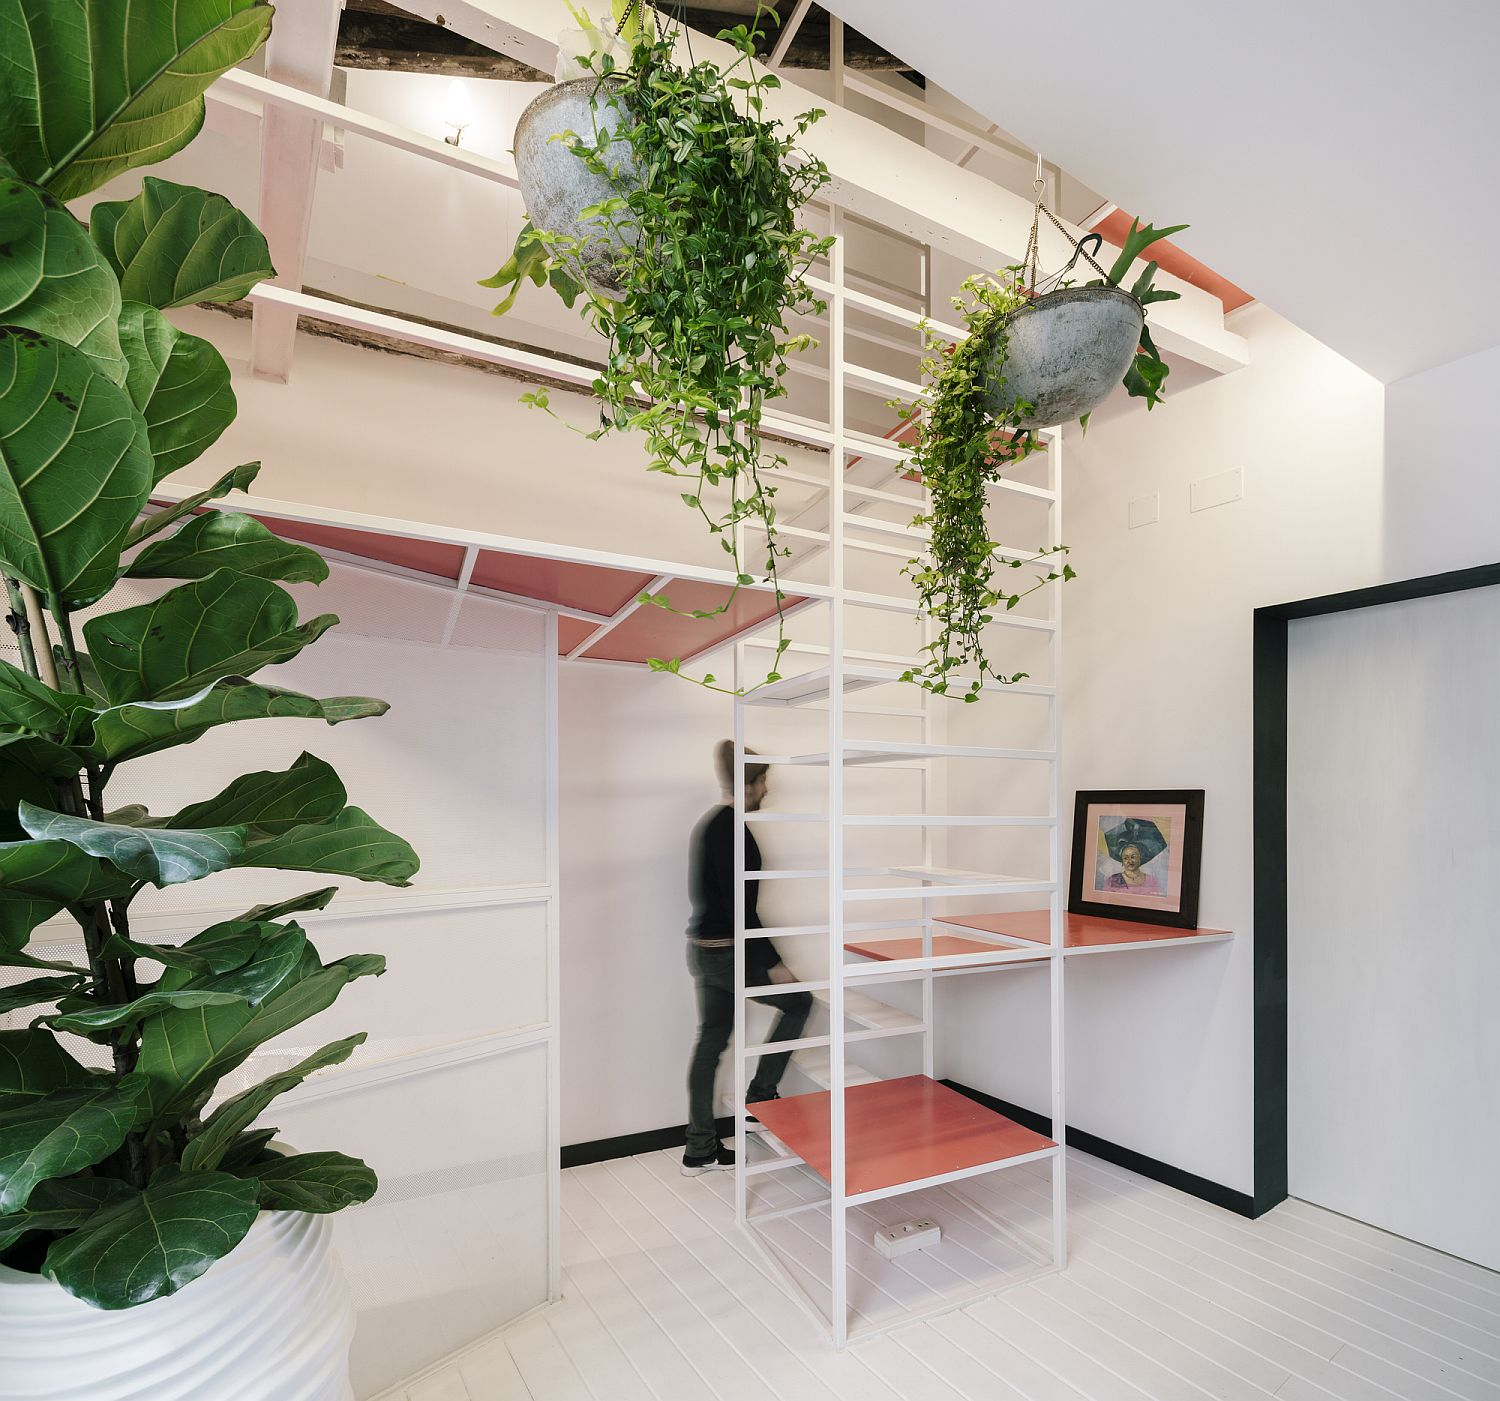 Ultra-Tiny Madrid Apartment with a Multi-Tasking Staircase at its Heart!